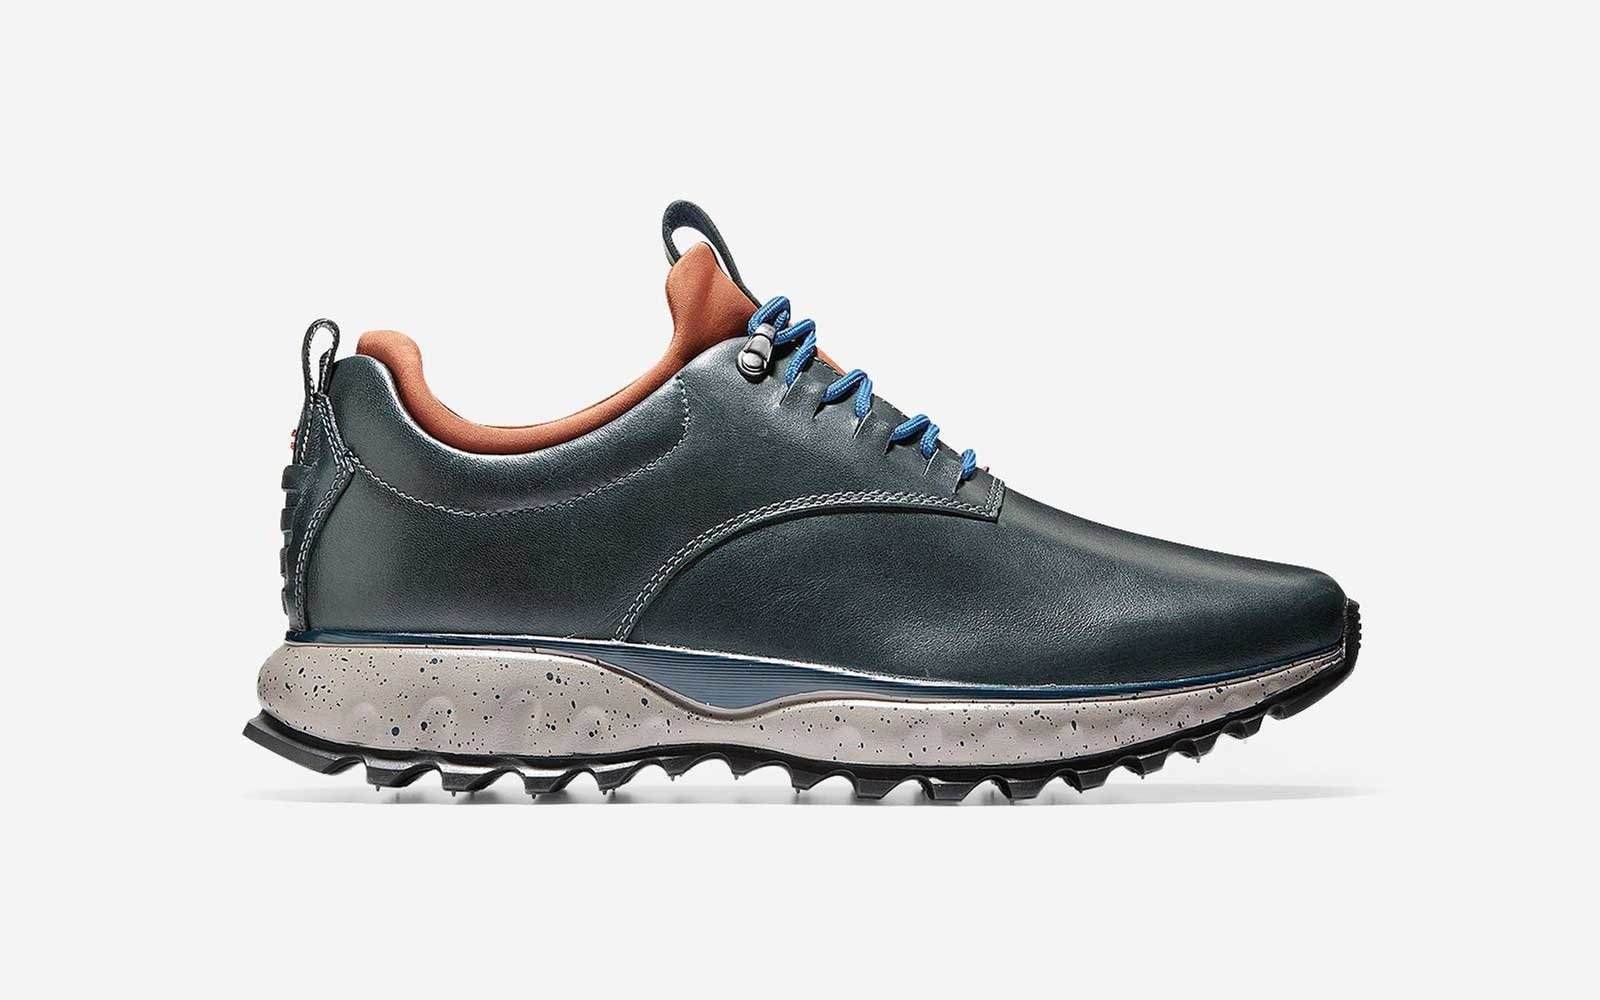 edd138161bf Cole Haan Men s Zerogrand All-terrain Waterproof Sneaker